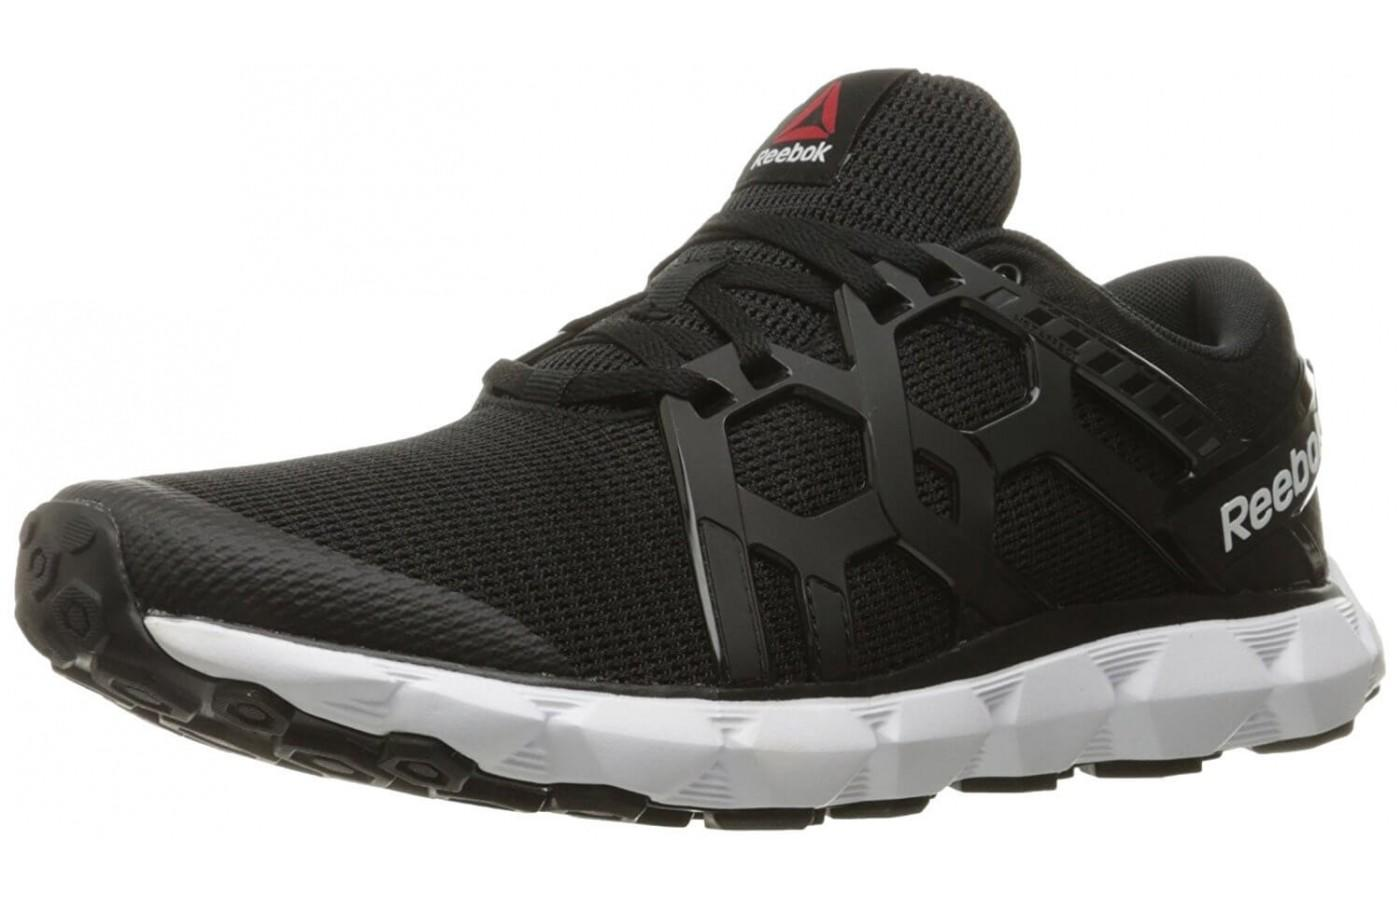 d1ed2d520 Cheap reebok memory foam shoes review Buy Online  OFF38% Discounted